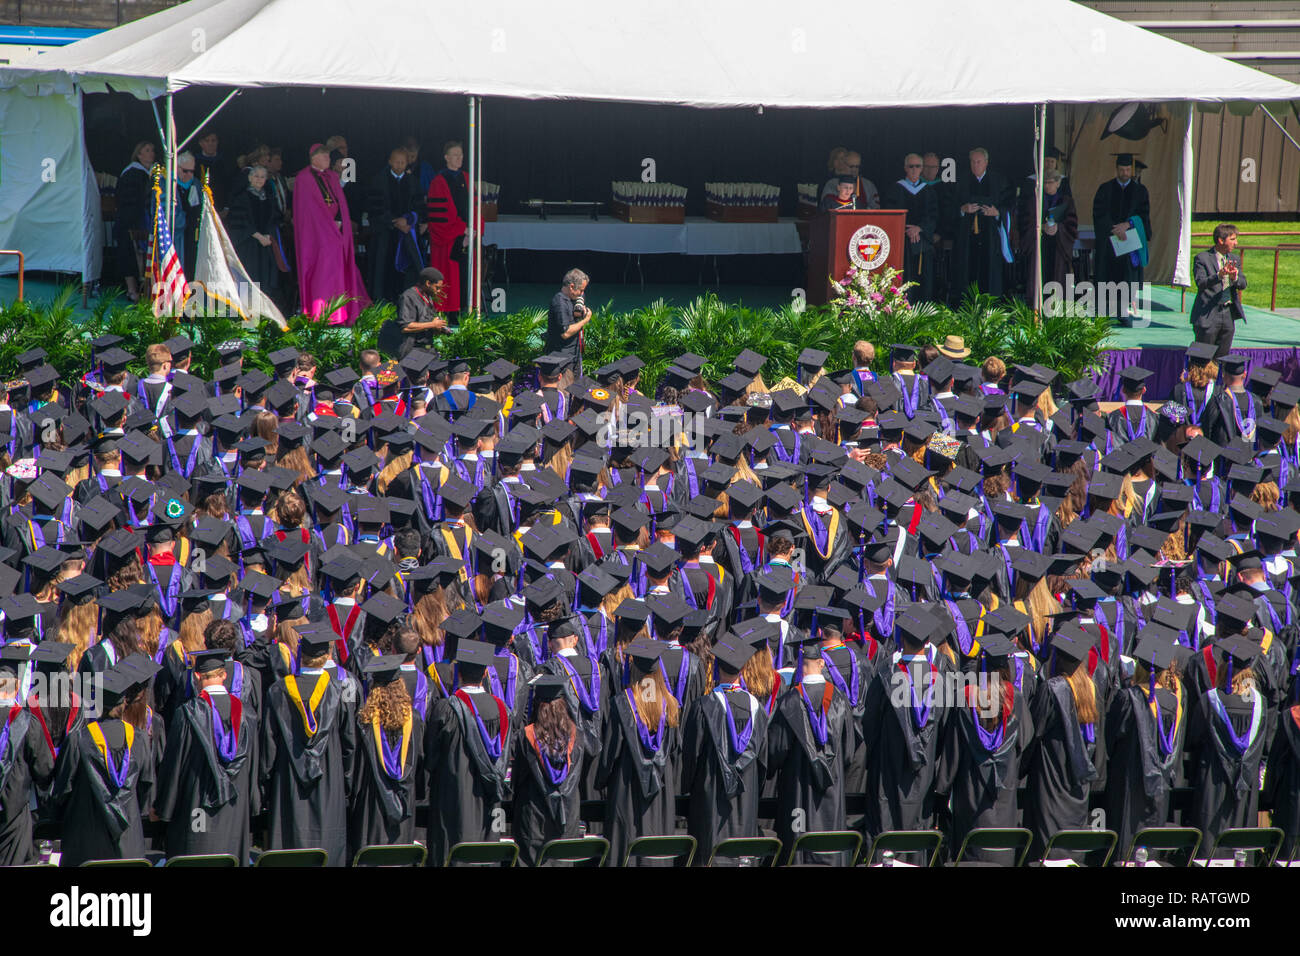 Worcester, Massachusetts--May 22, 2015. Graduating seniors stand wearing caps and gowns at the Holy Cross commencement ceremony. - Stock Image